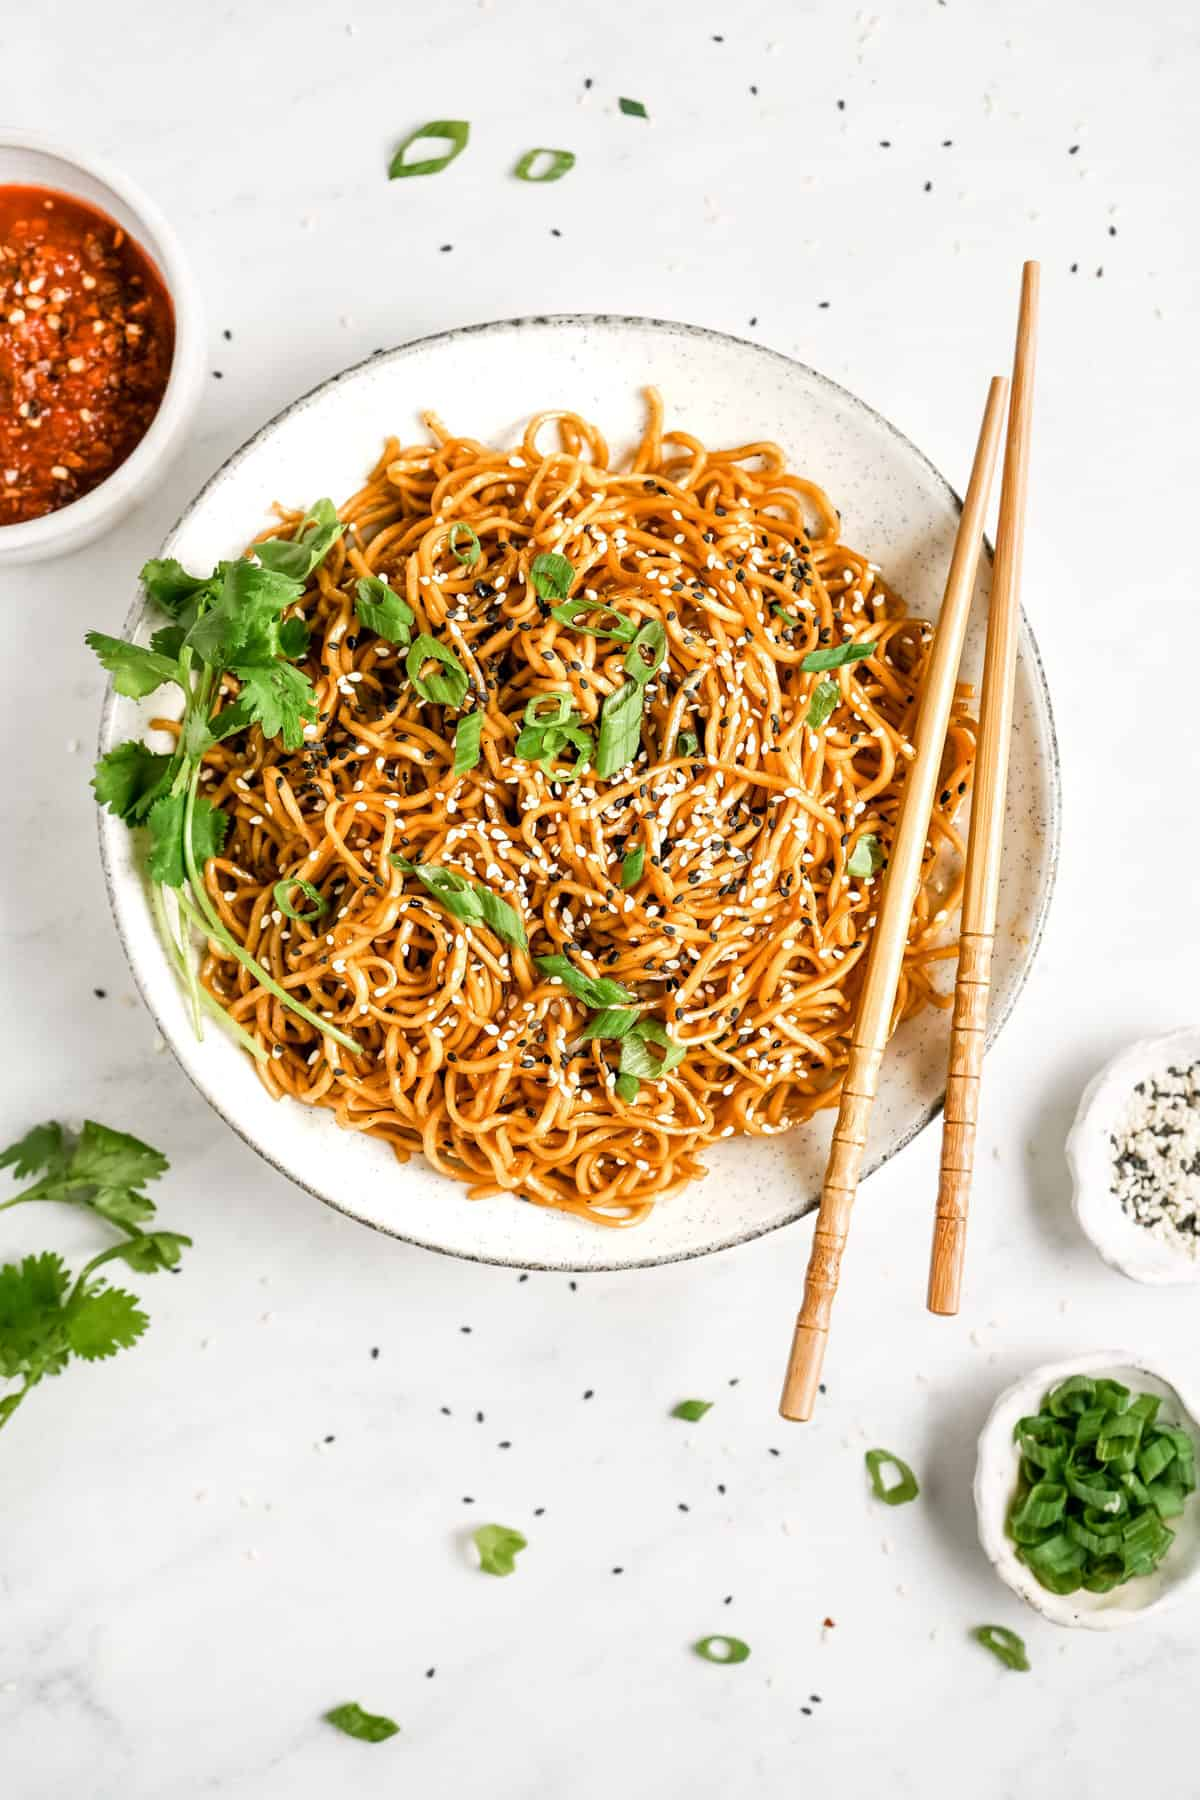 A plate of Chinese noodles with chopsticks.